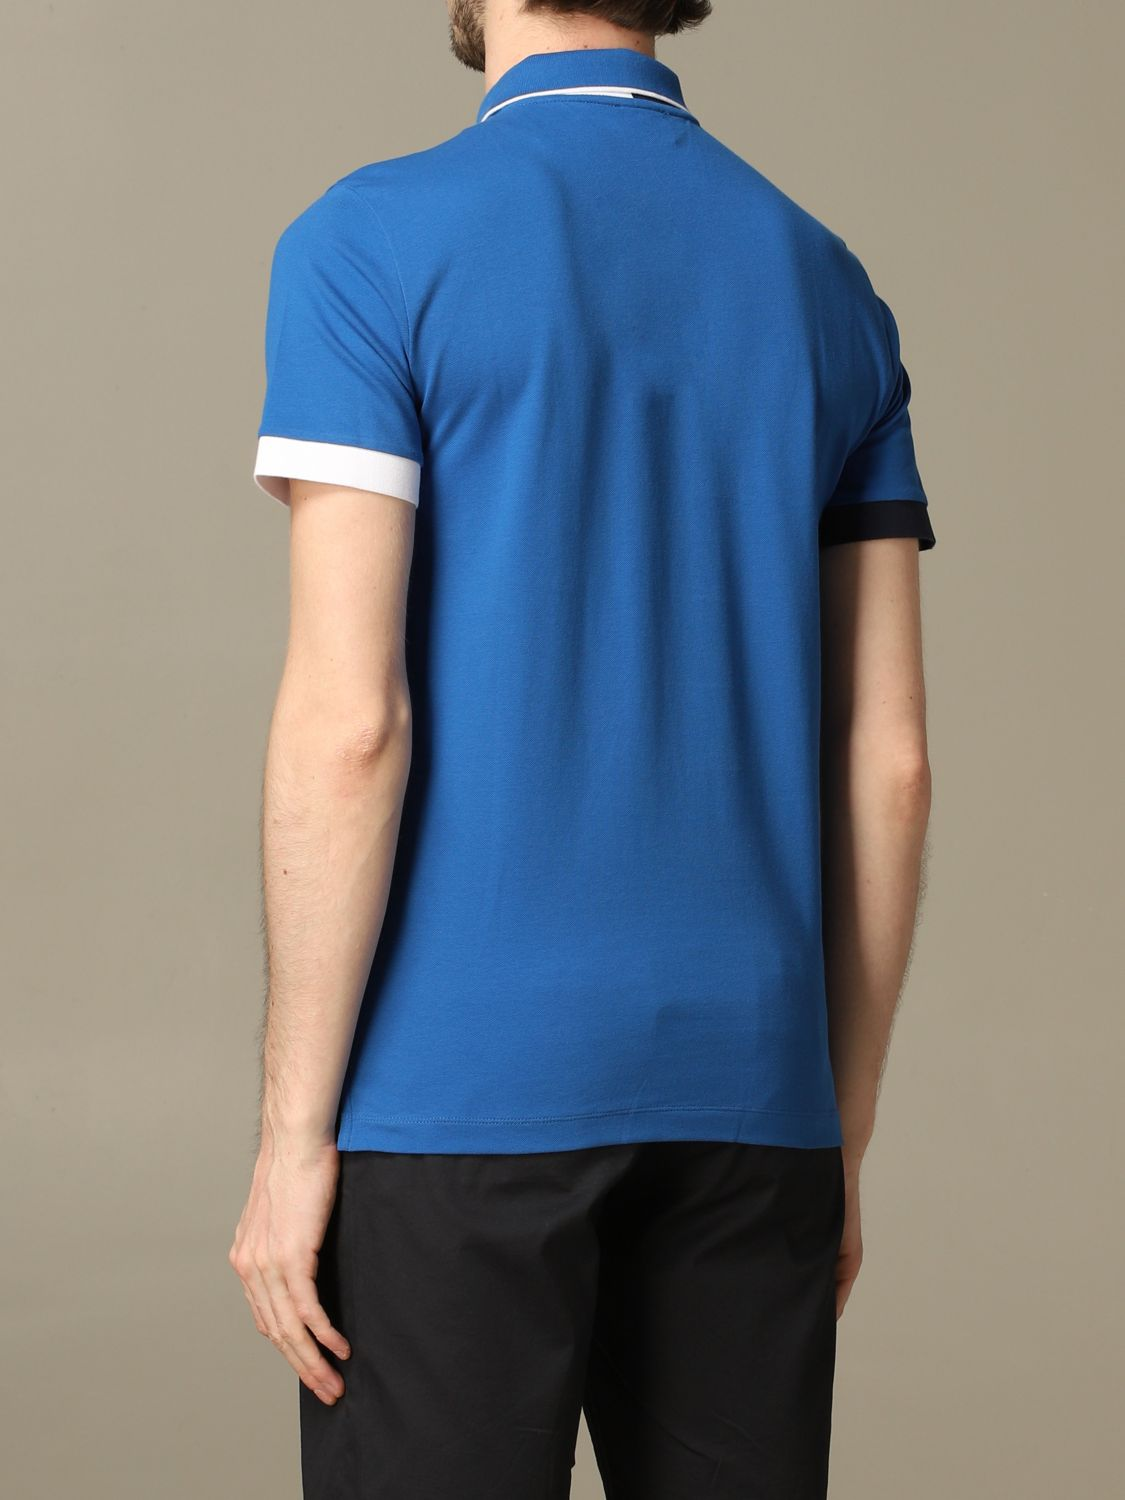 T-shirt Ea7: T-shirt men Ea7 blue 2